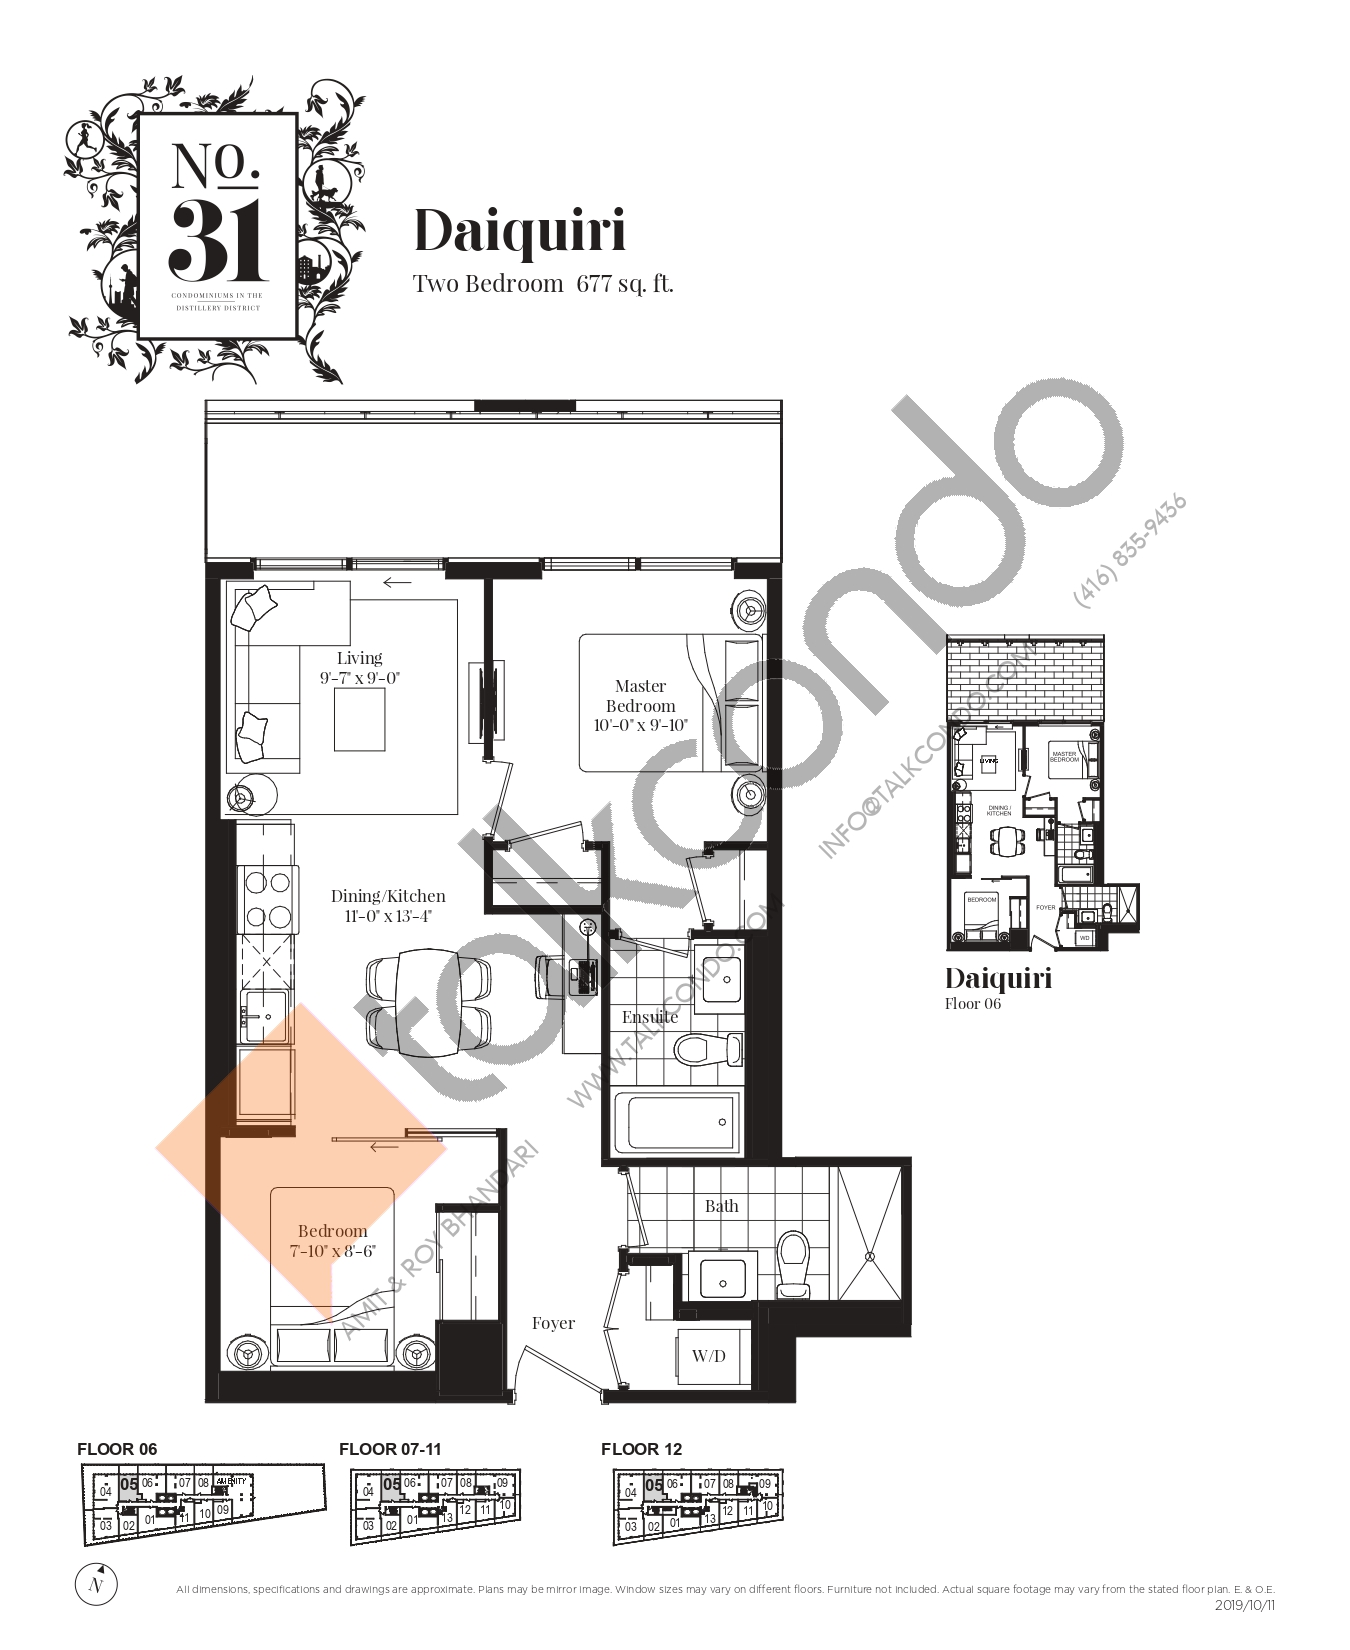 Daiquiri Floor Plan at No. 31 Condos - 677 sq.ft